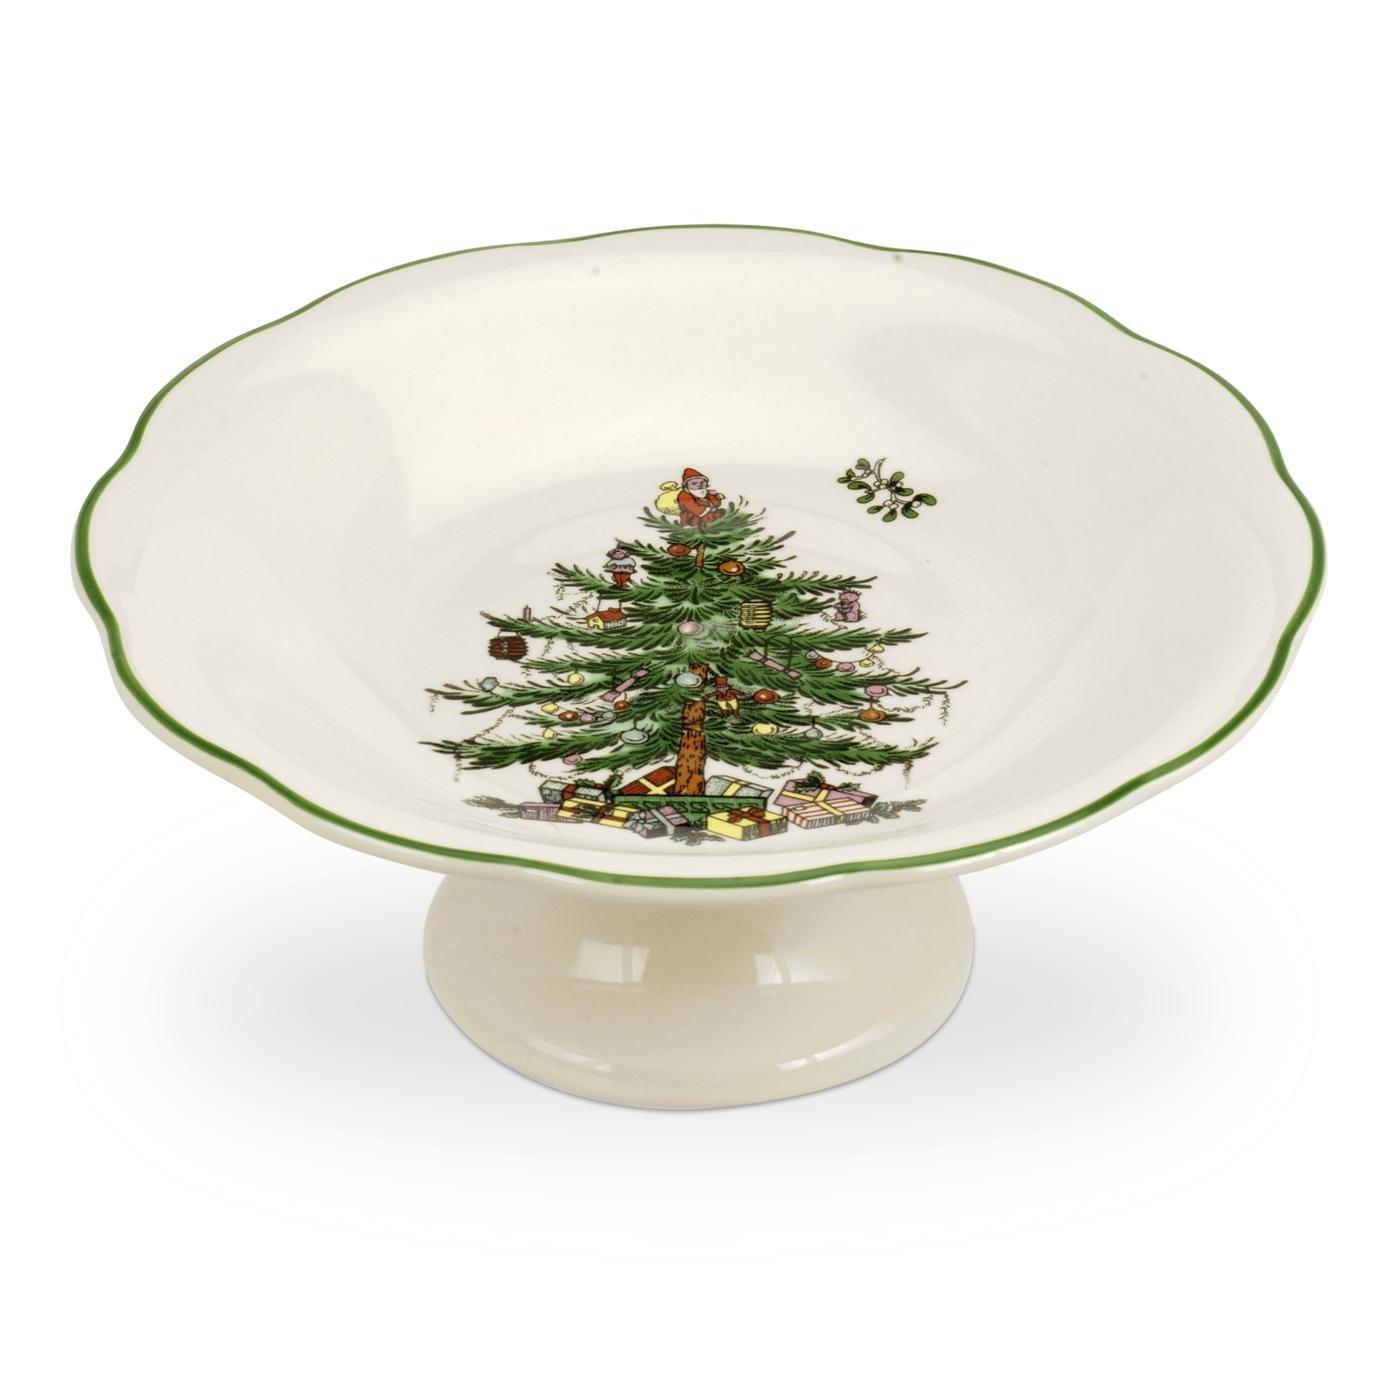 Spode Christmas Tree Sculpted Footed Candy Dish, 7-Inch Portmeirion USA 1536760